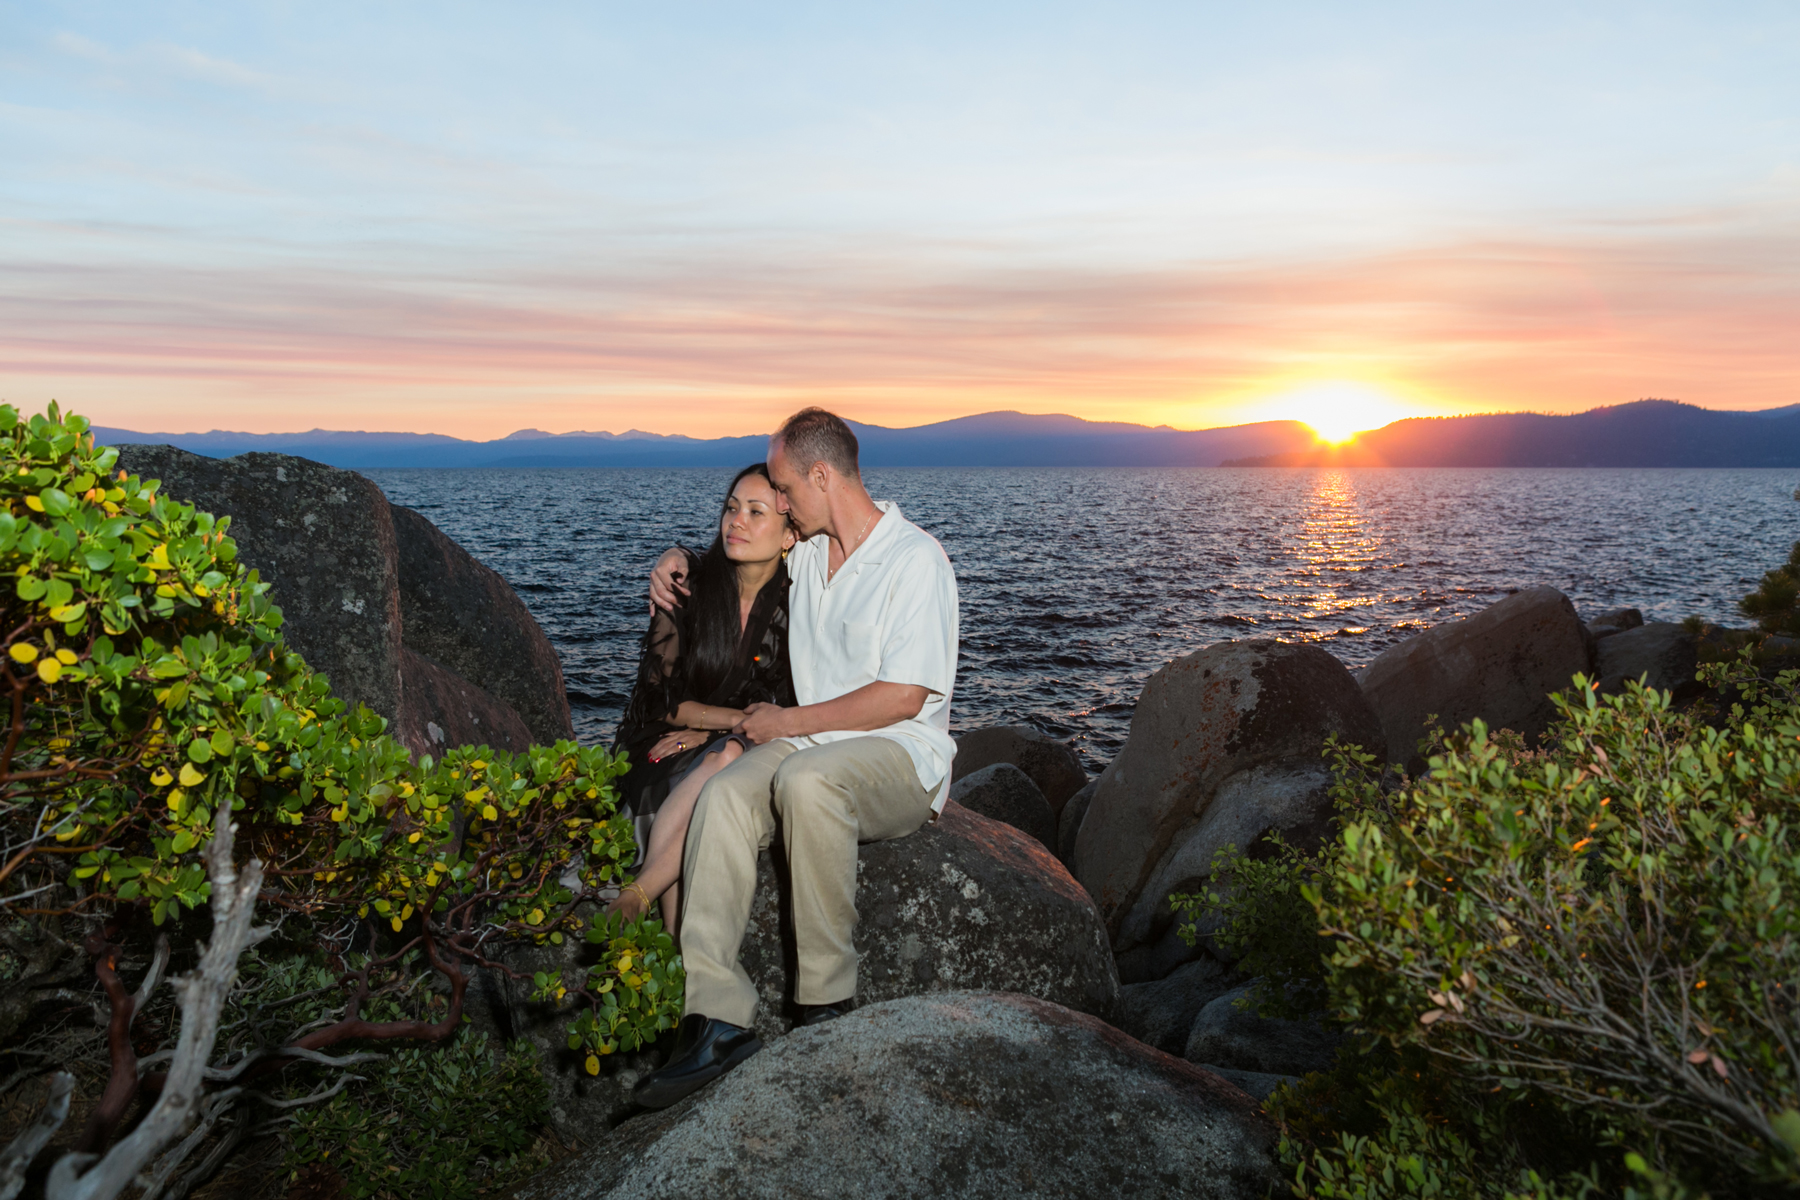 hyatt-lake-tahoe-7-engagement-weddings